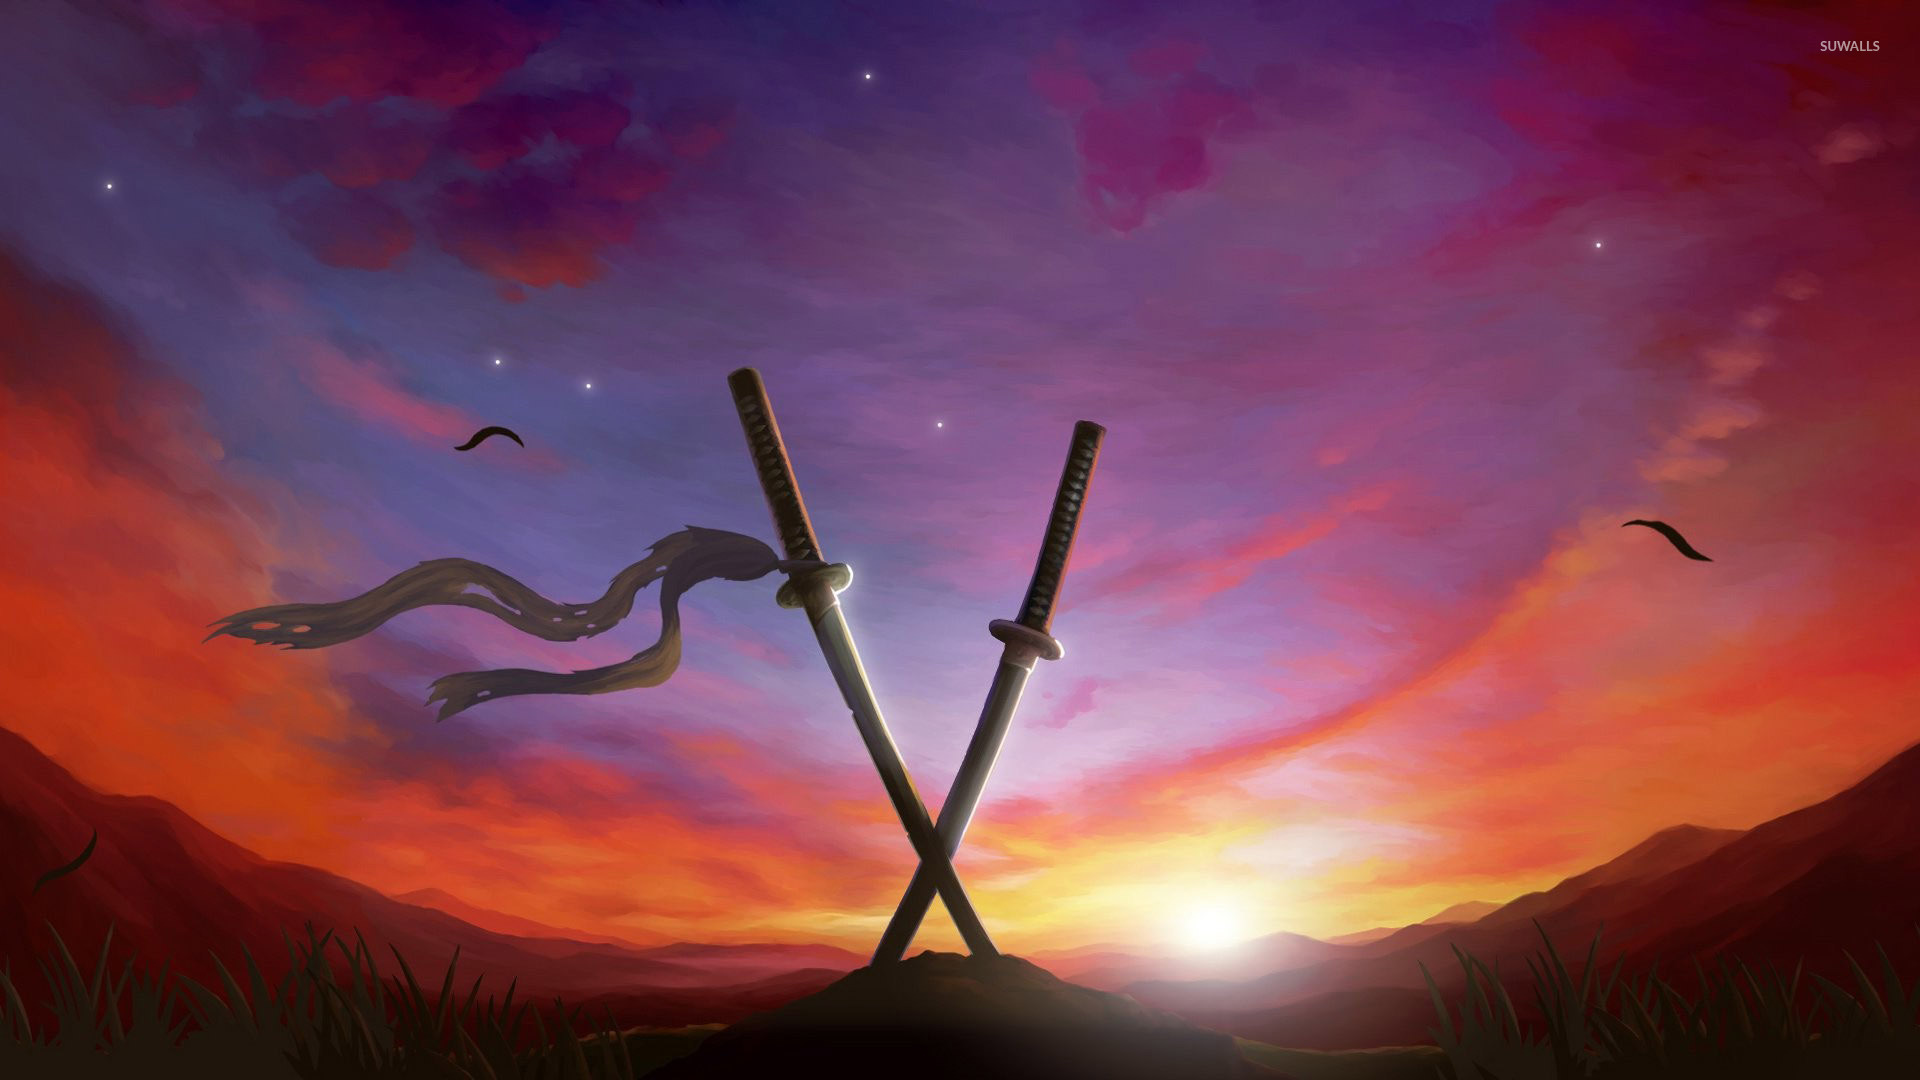 Sunset In Muramasa The Demon Blade Wallpaper Anime Wallpapers